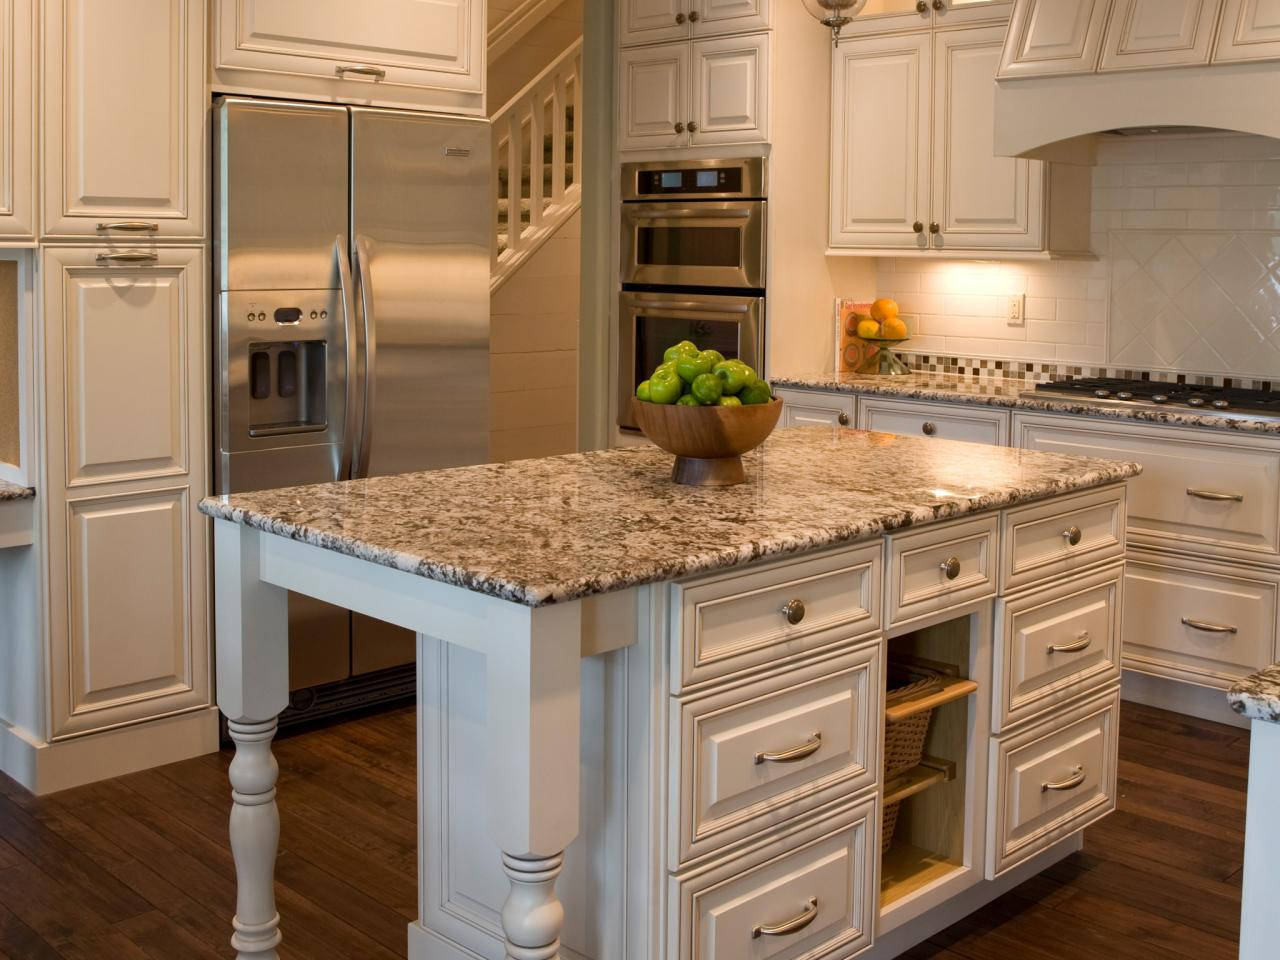 Granite-Countertop-Prices_s4x3.jpg.rend.hgtvcom.1280.960